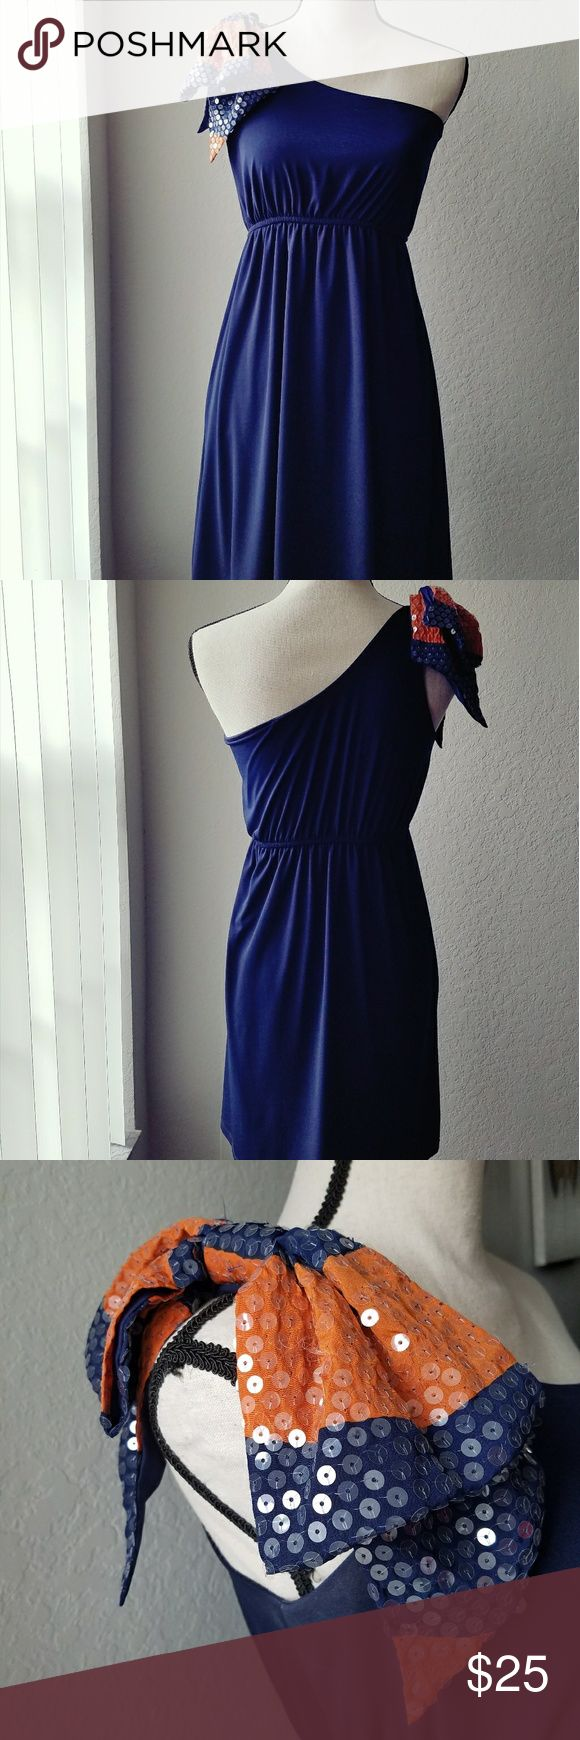 Judith March one shoulder bow dress A Judith March navy dress with a navy and orange sequin bow. Perfect for game day! Judith March Dresses One Shoulder